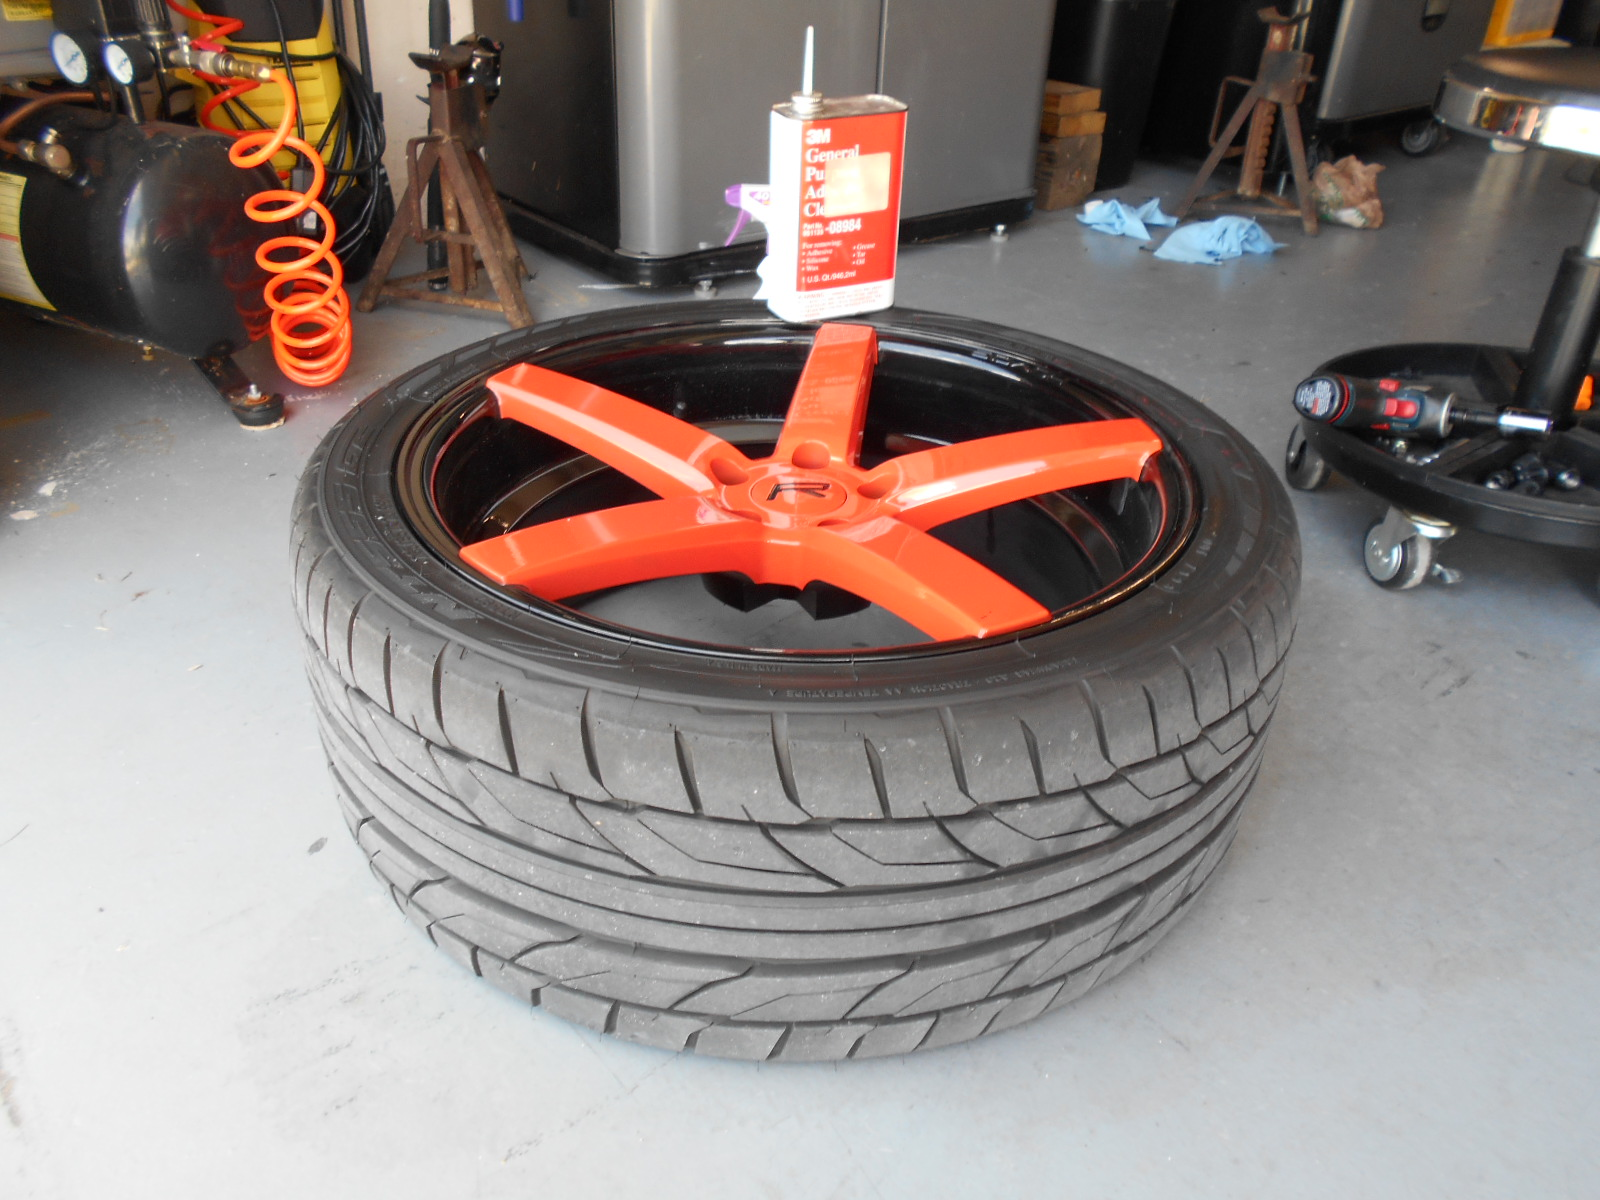 Wiping tire with 3M cleaner